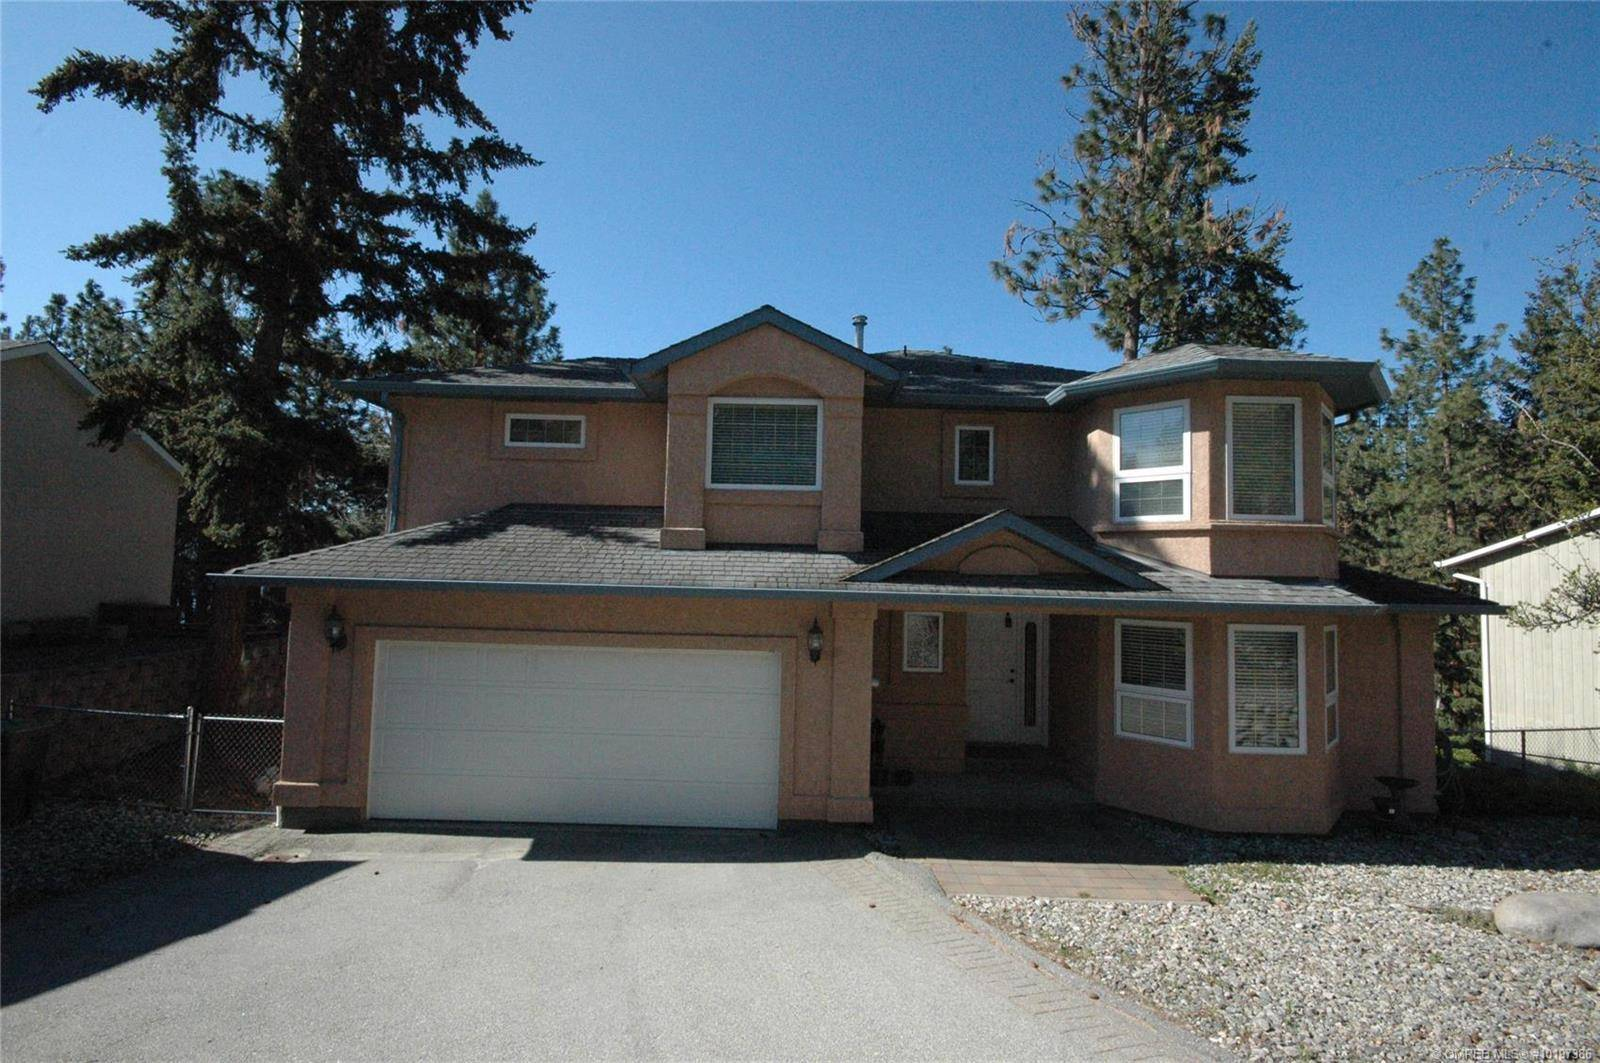 House for sale at 3959 Trepanier Ht Peachland British Columbia - MLS: 10197386